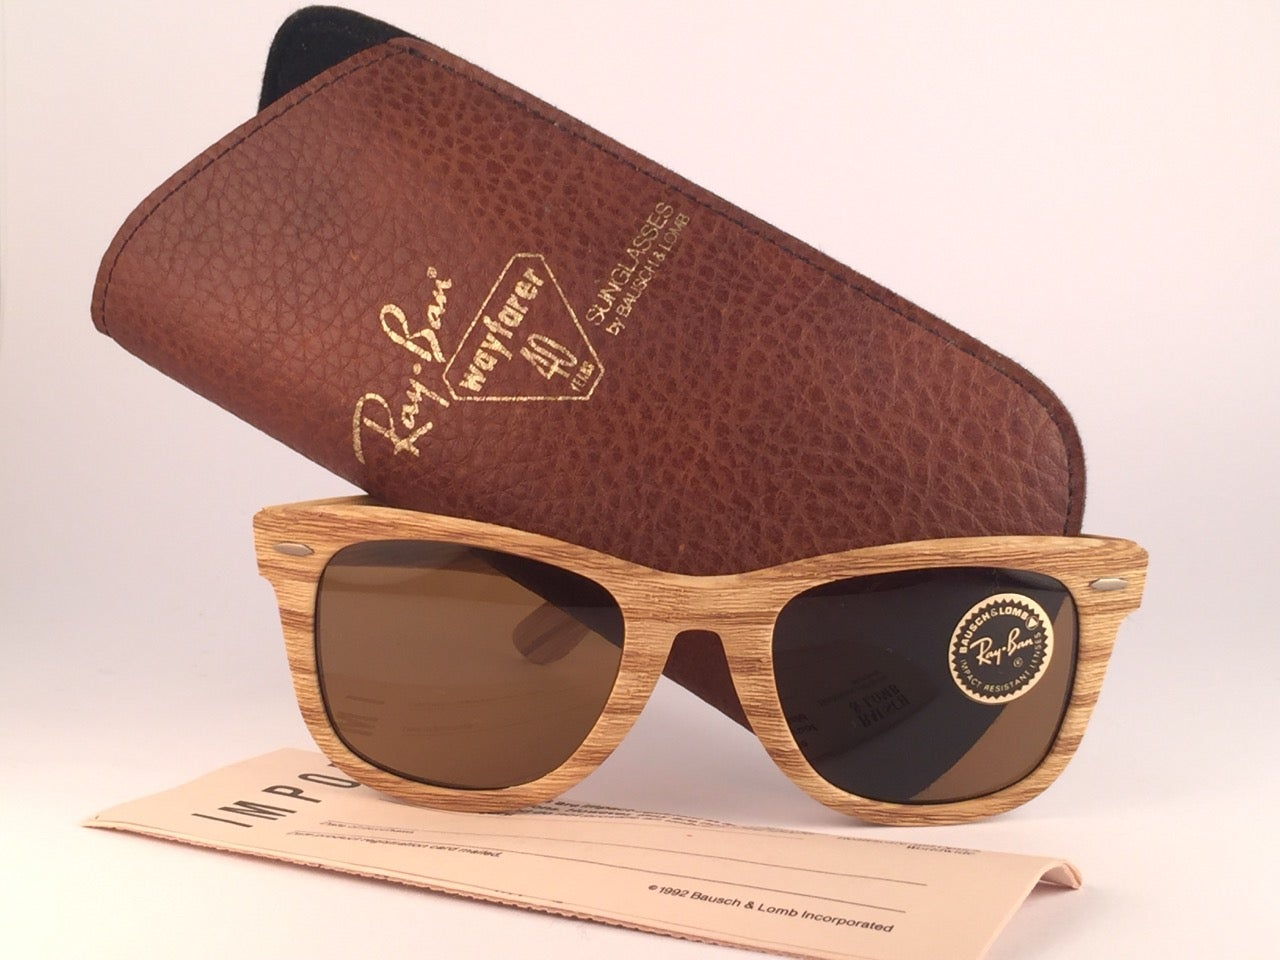 20bec239b4 New Ray Ban The Wayfarer Woodies Driftwood Edition Collectors USA 80  Sunglasses at 1stdibs